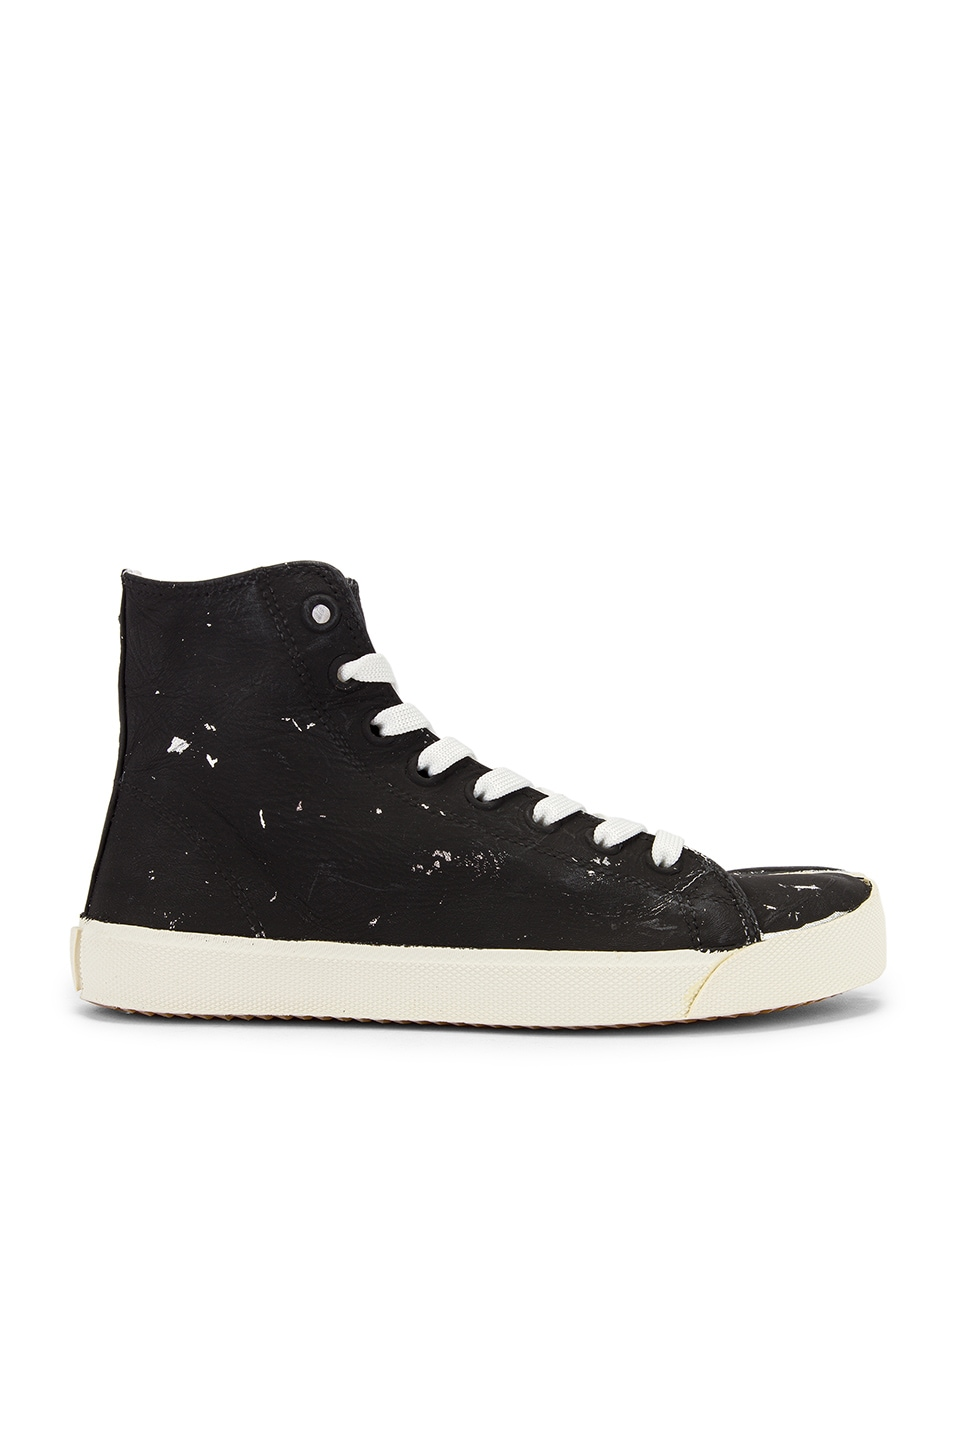 Image 2 of Maison Margiela High Top Tabi Sneakers in Black & Silver